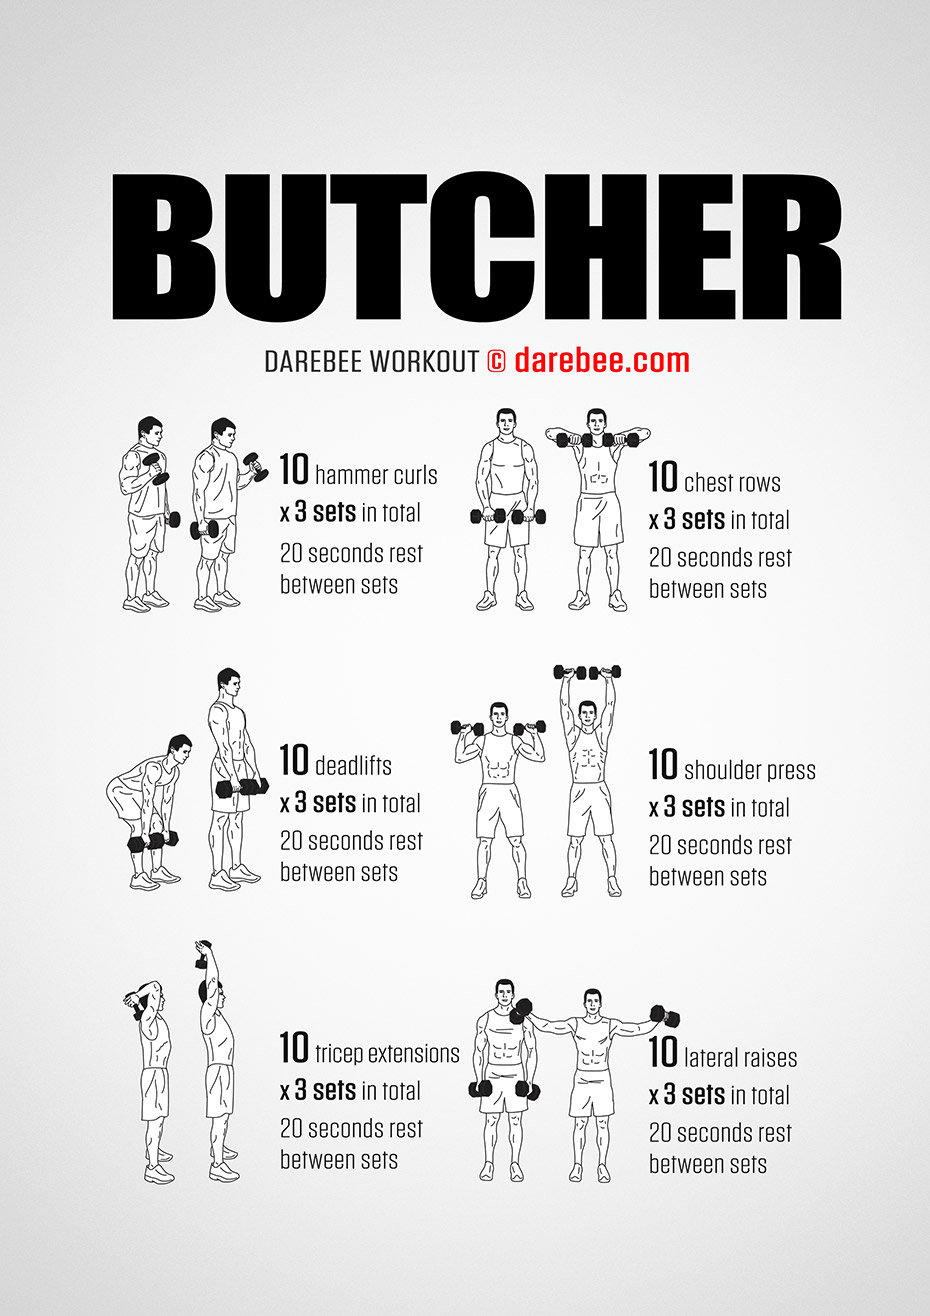 The Butcher Workout